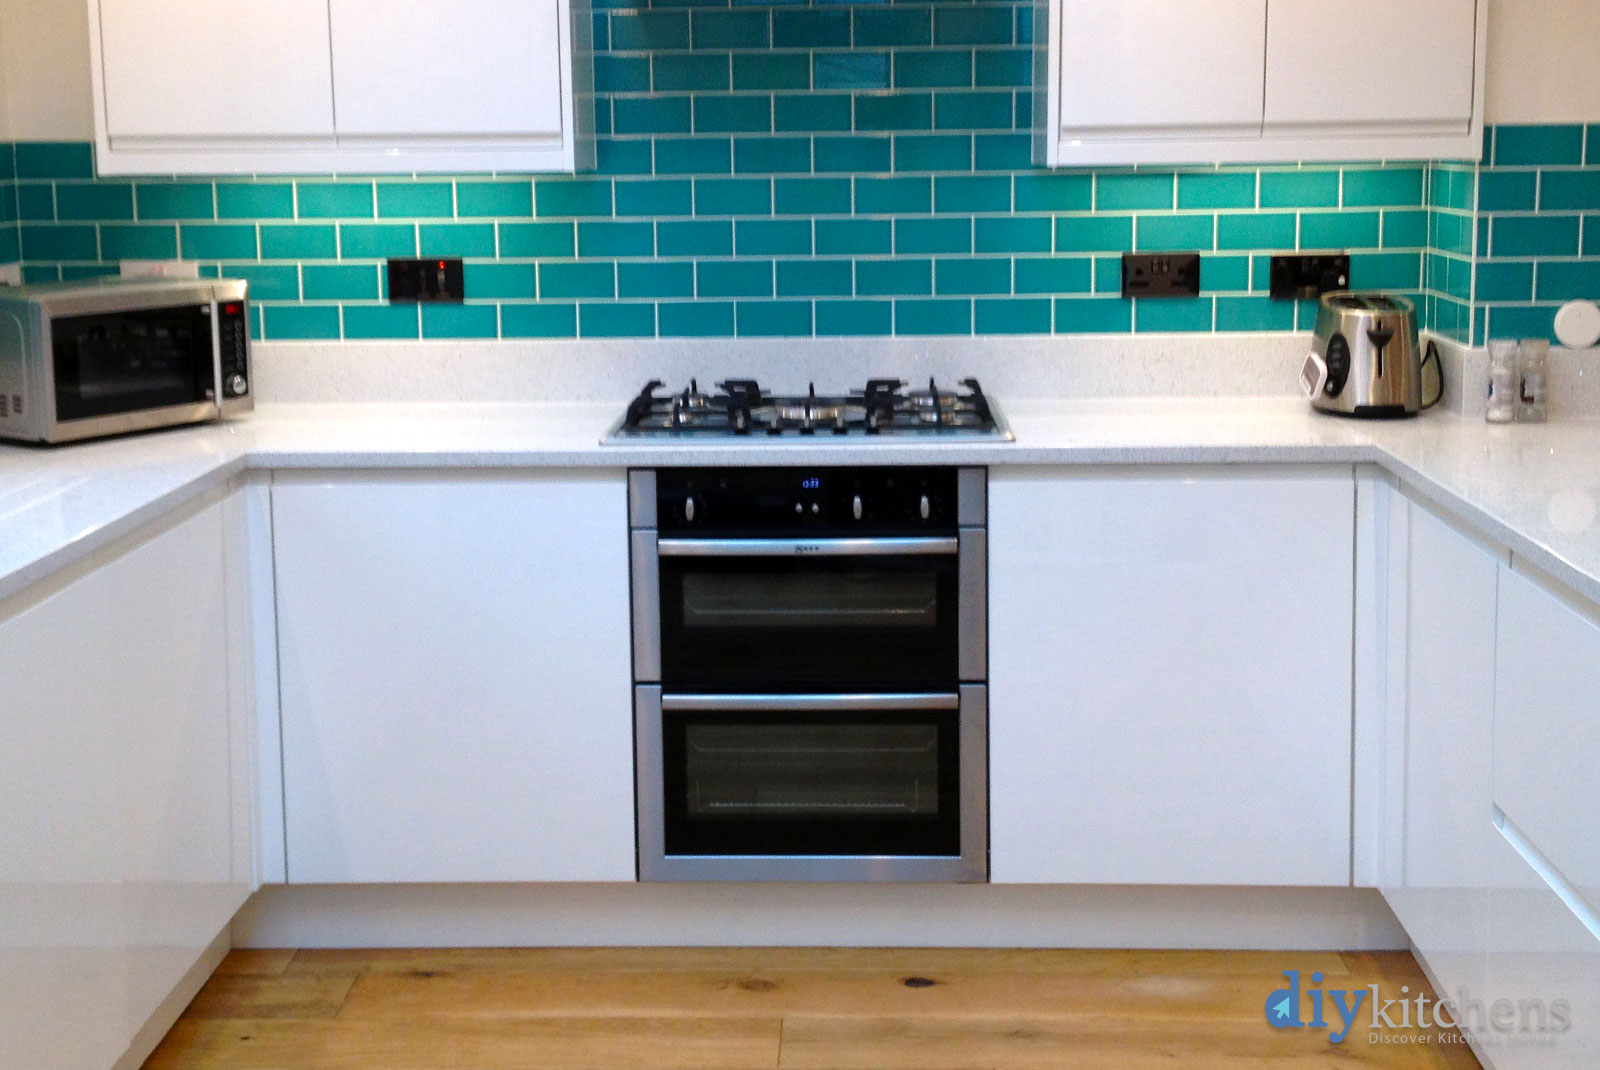 Kitchen Drawer Carcasses Wickes - lovely wickes kitchen cabinet ...